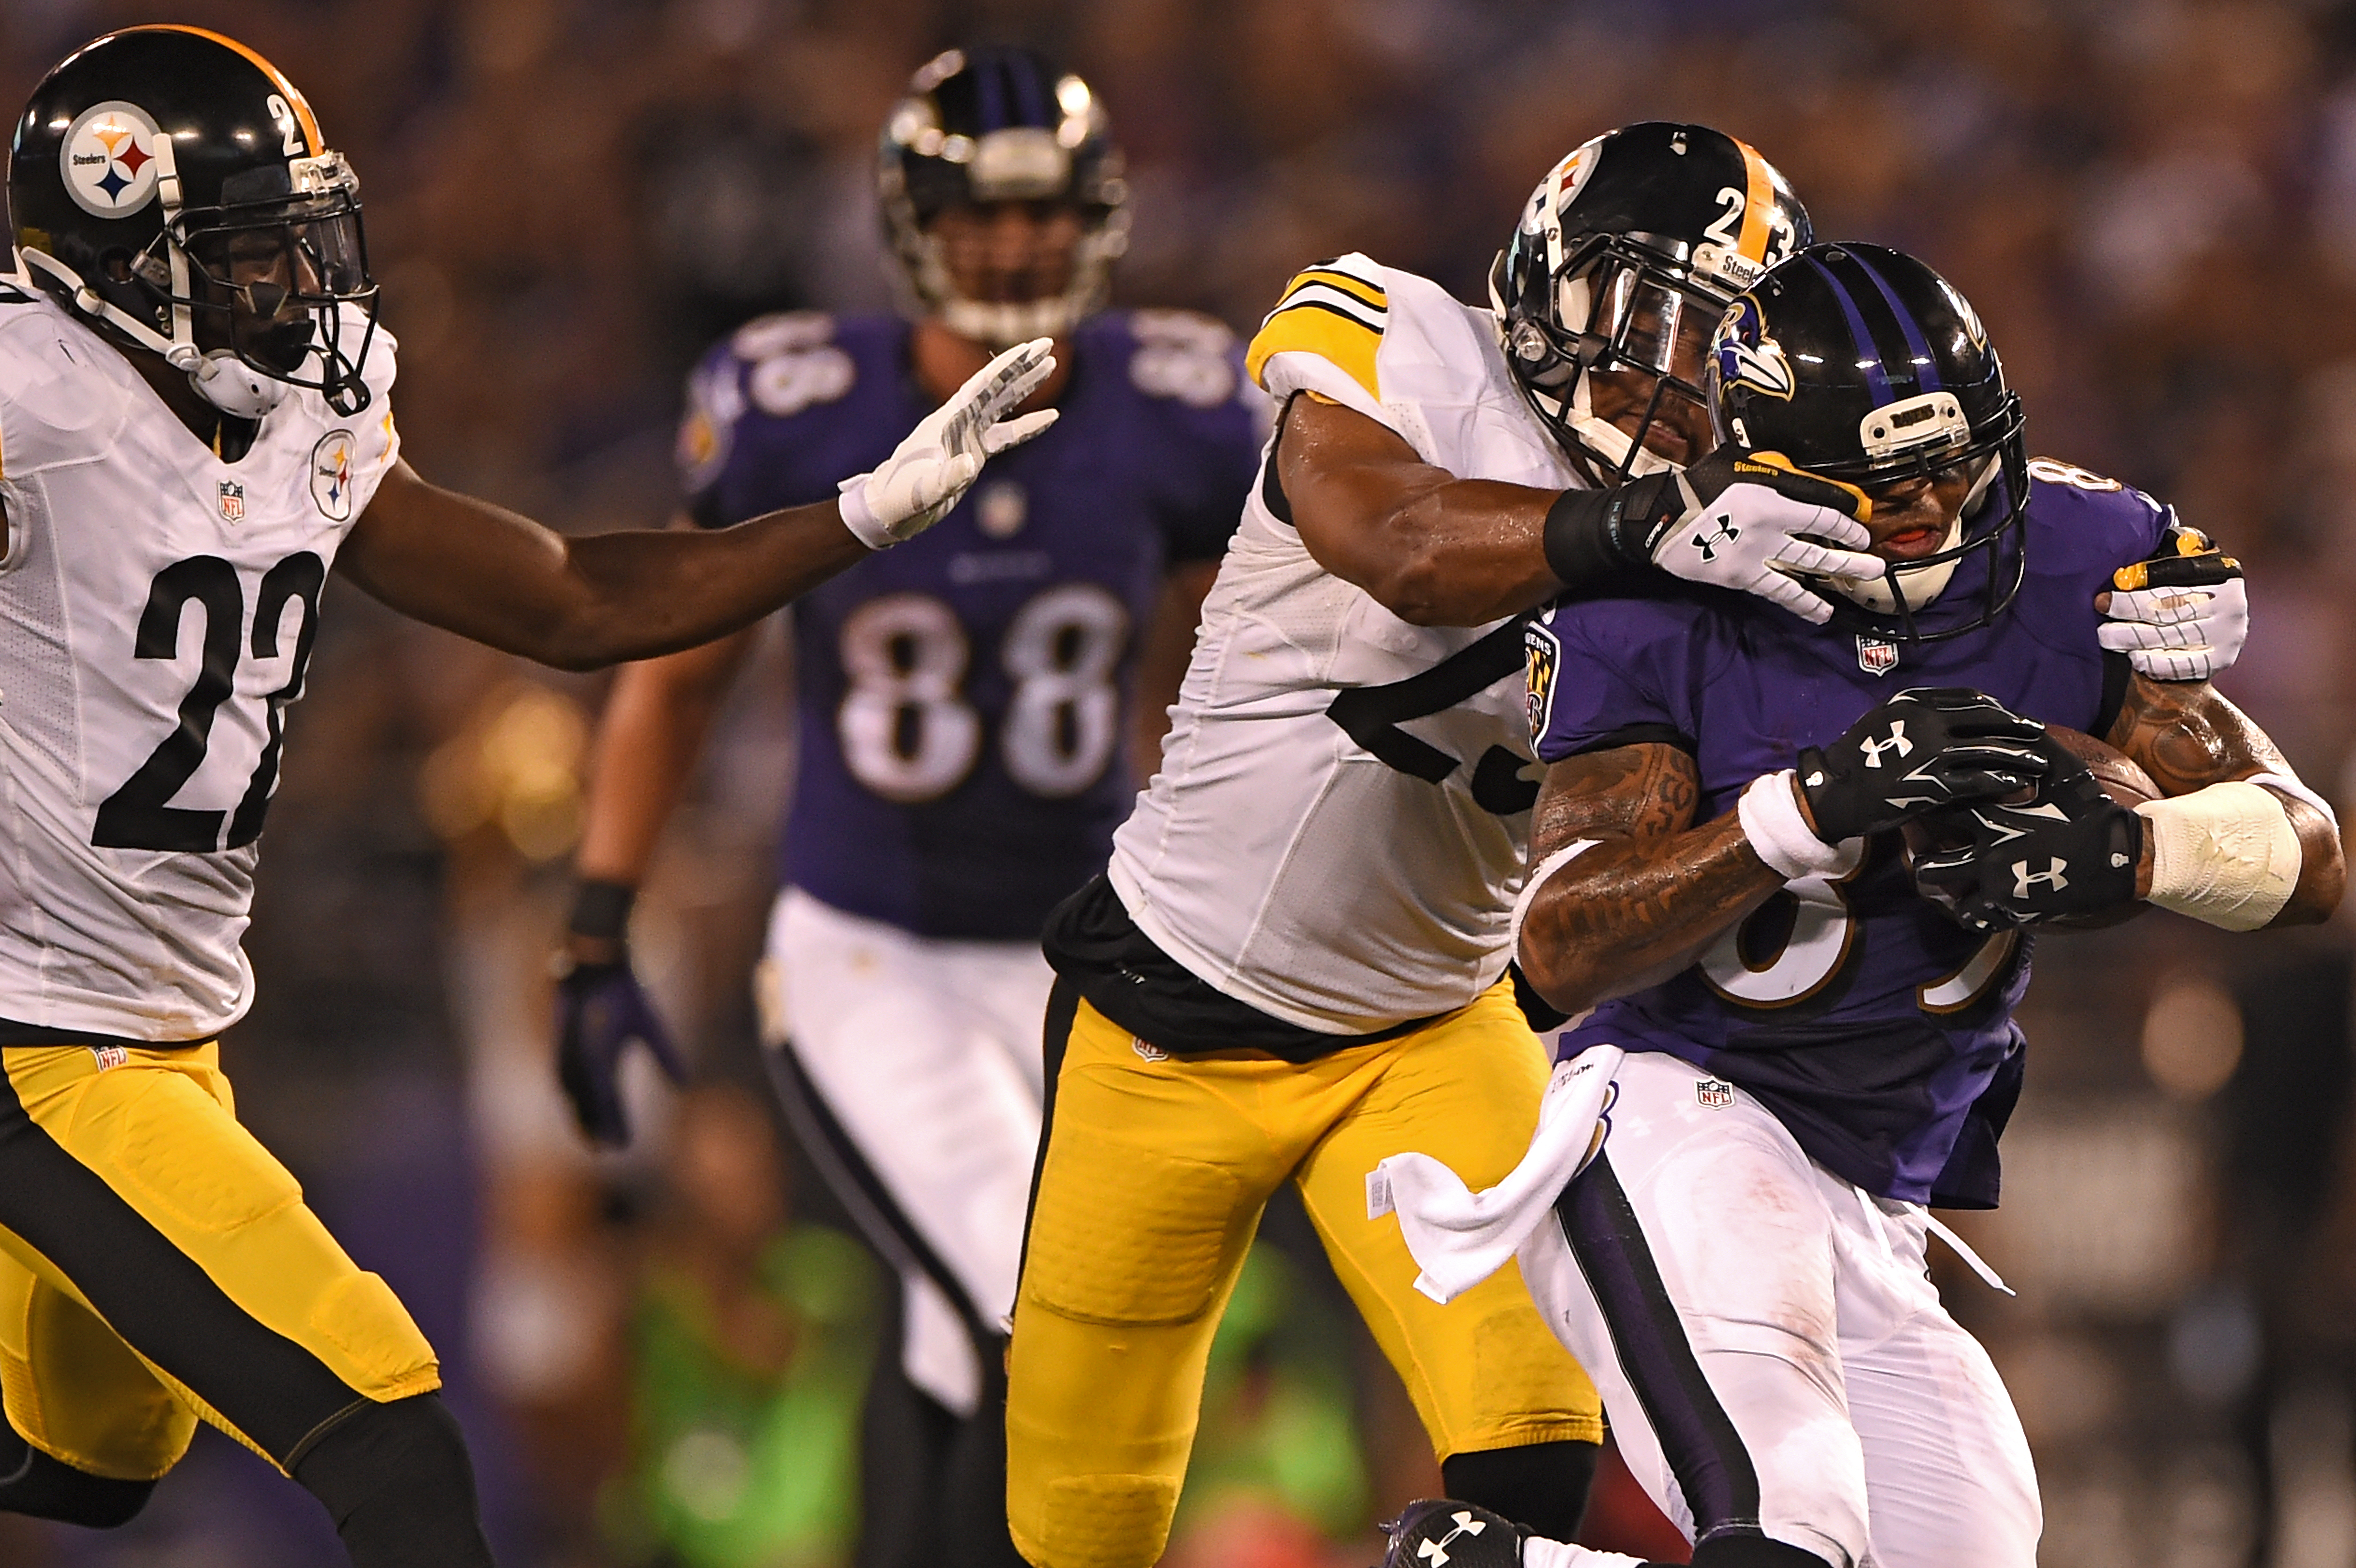 Wide receiver Steve Smith #89 of the Baltimore Ravens is pulled down by the face mask by free safety Mike Mitchell #23 of the Pittsburgh Steelers on September 11, 2014 in Baltimore.